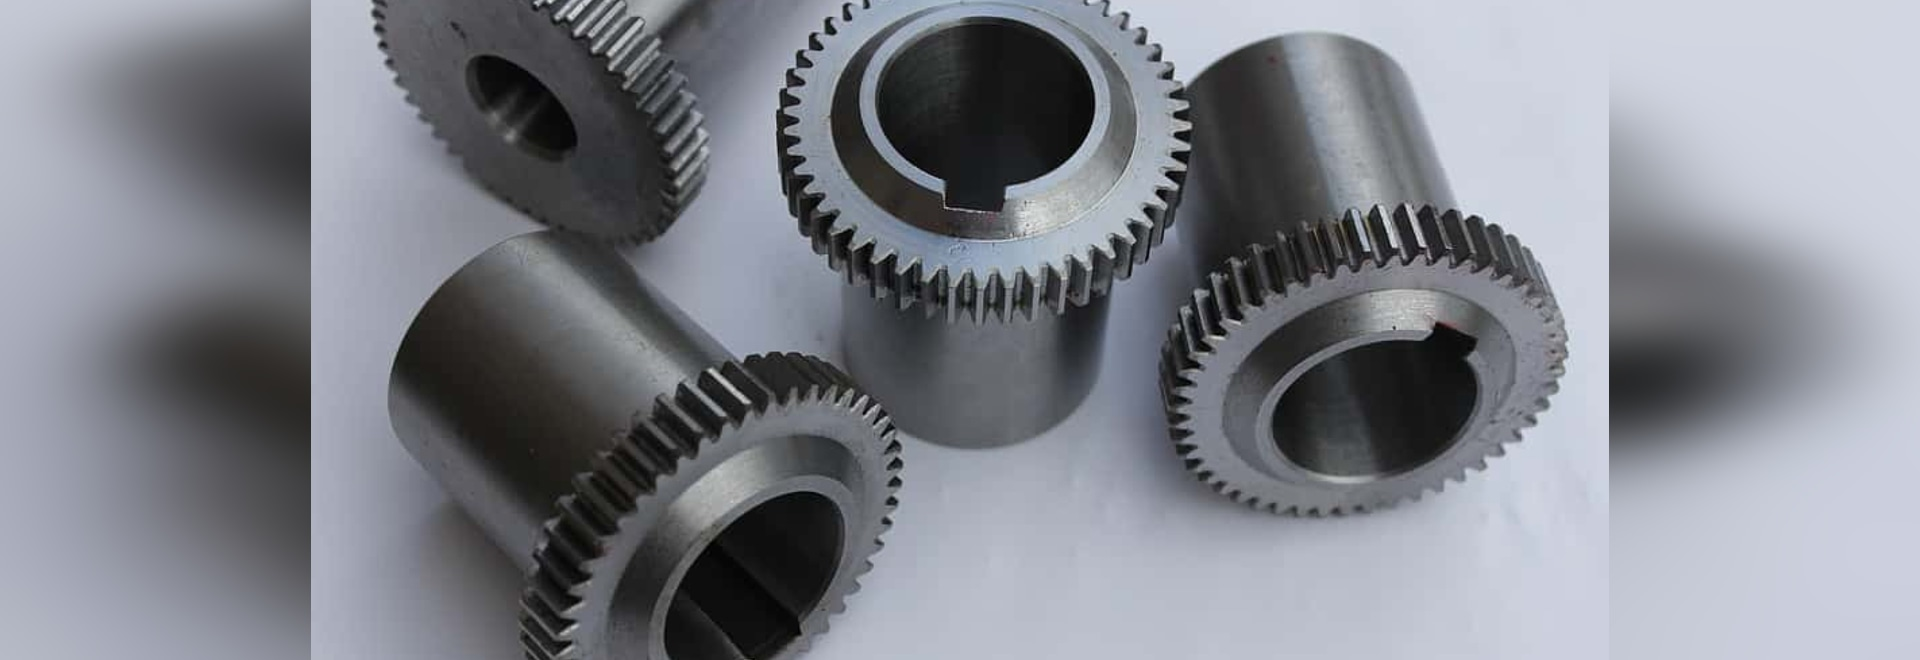 CLR gear machining: concept and manufactured parts